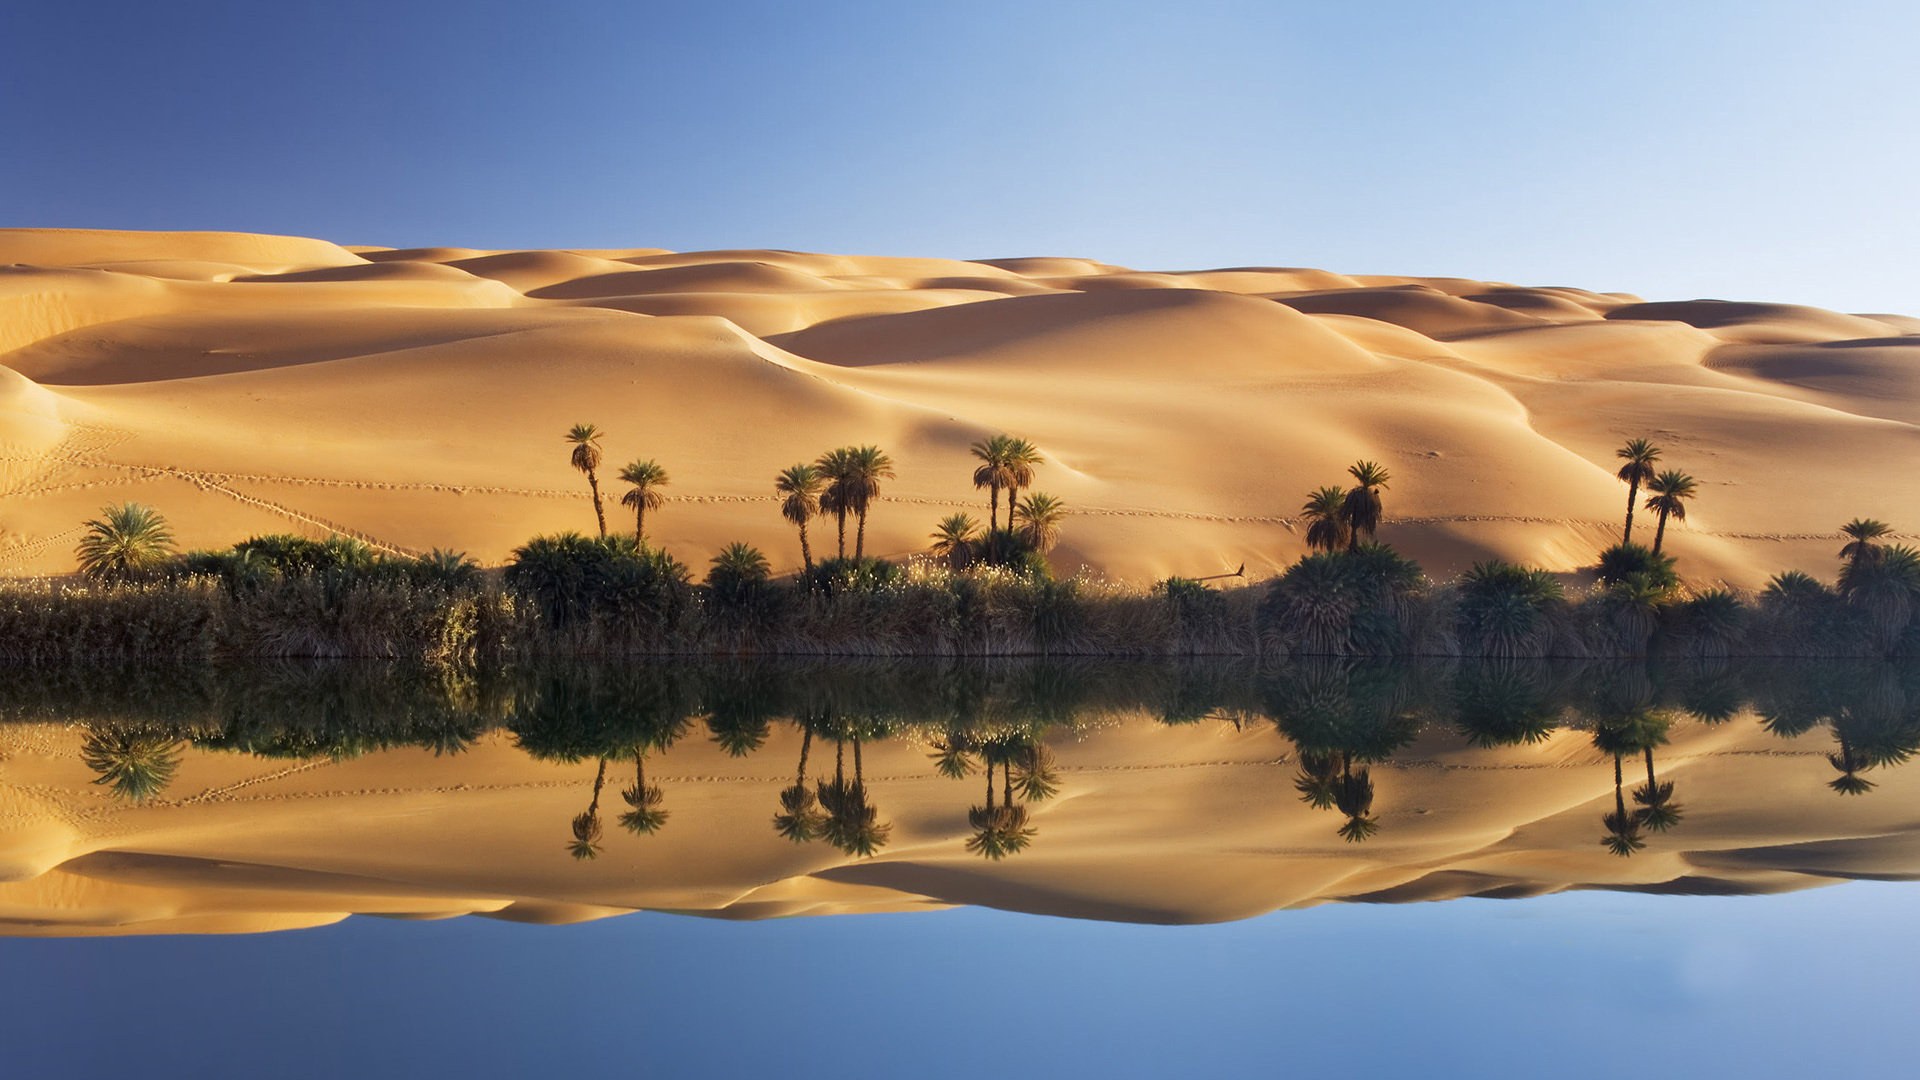 oasis landscape wallpapers archives - photo #4